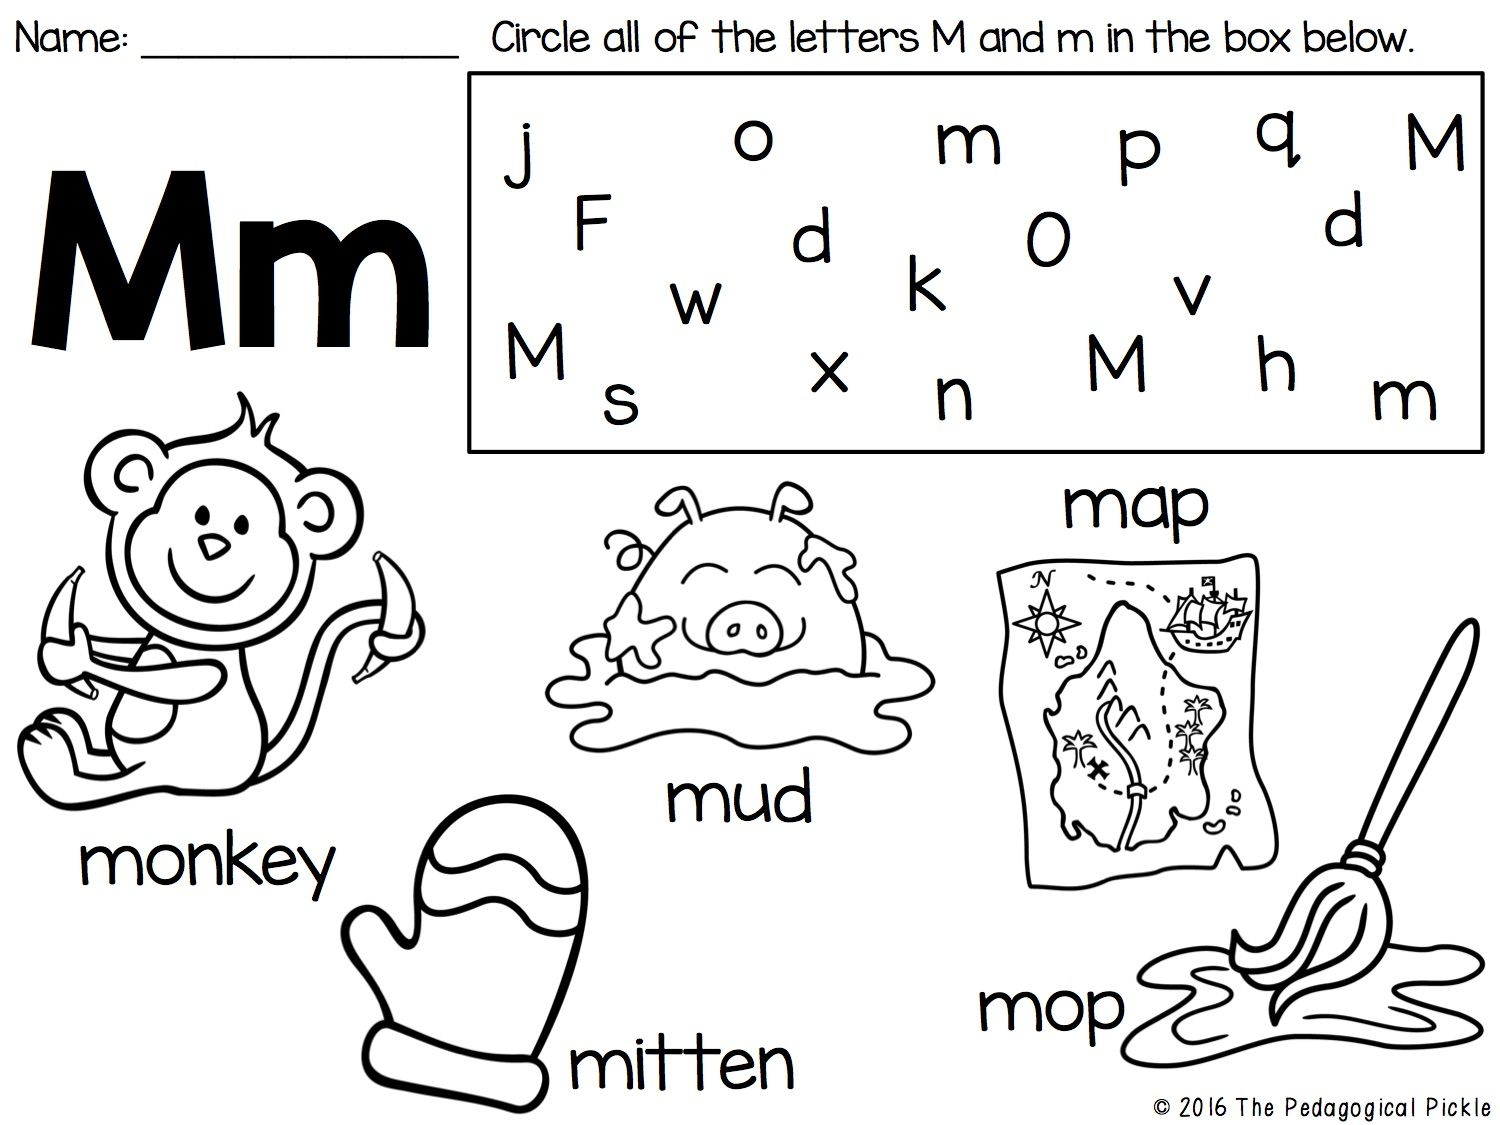 Awesome Set Of Alphabet Coloring Pages This Would Make A Great Review Activity For First Graders Or A Alphabet Coloring Alphabet Coloring Pages Coloring Pages